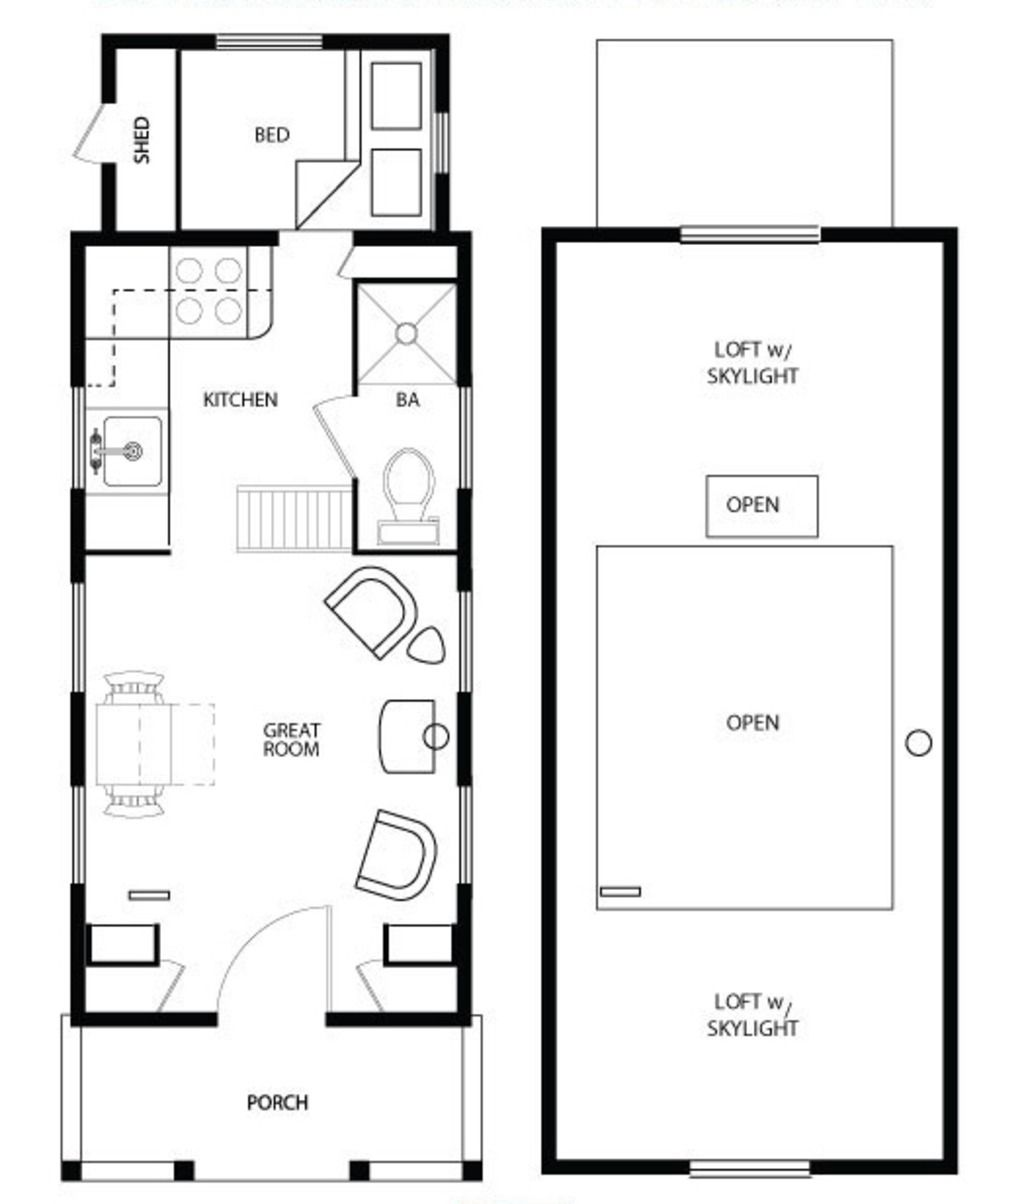 Outstanding 17 Best Images About Tiny House Floor Plans On Pinterest Tiny Largest Home Design Picture Inspirations Pitcheantrous